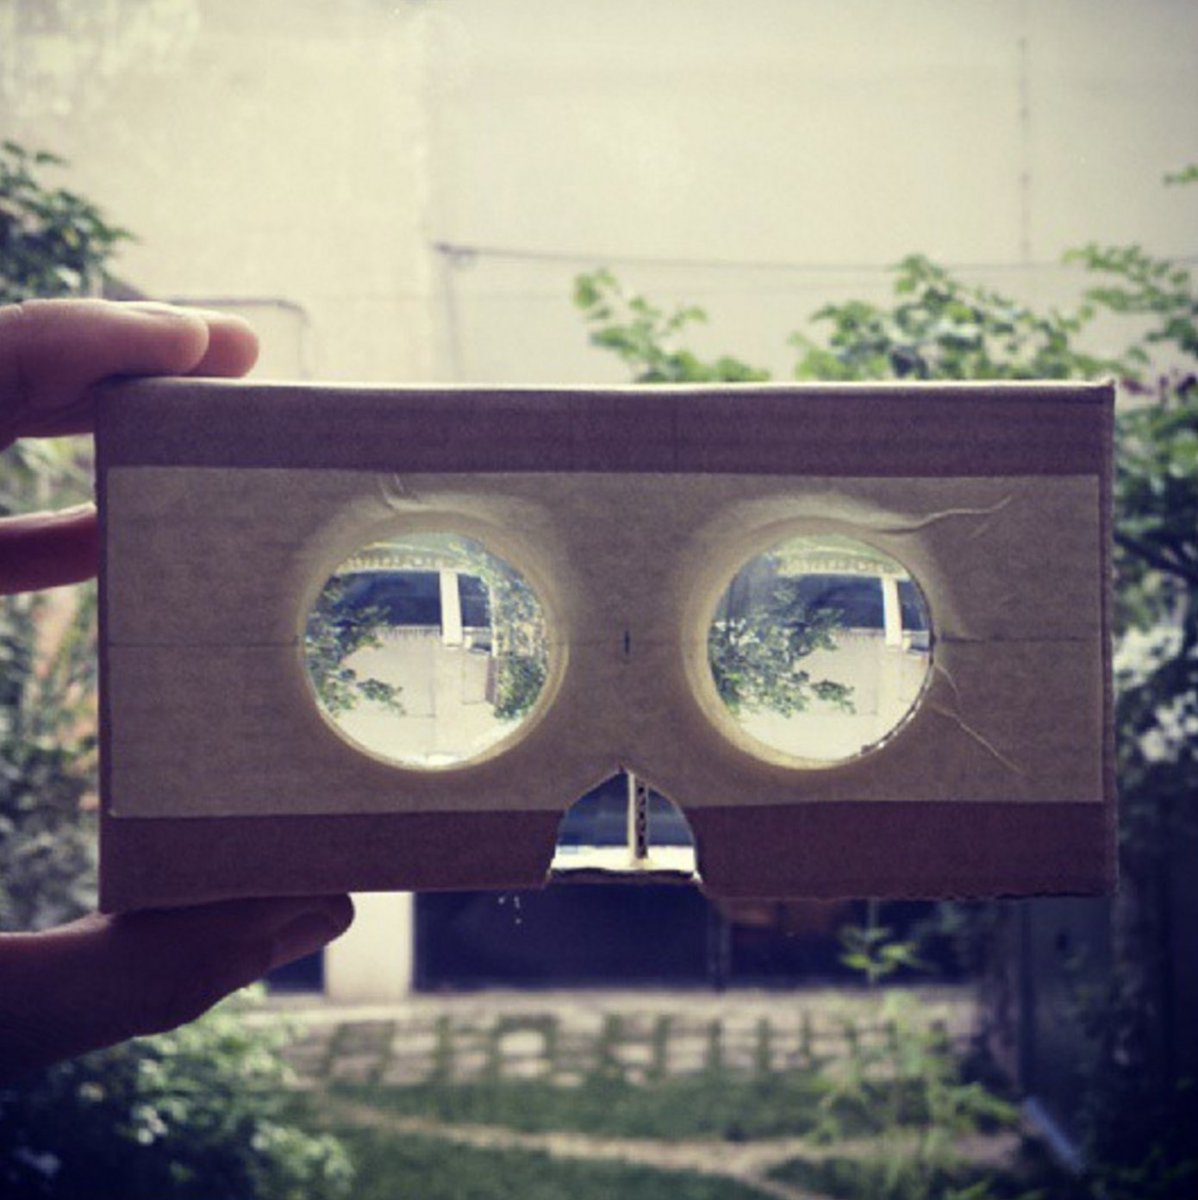 This is the very first Google Cardboard prototype. 10 million followed.